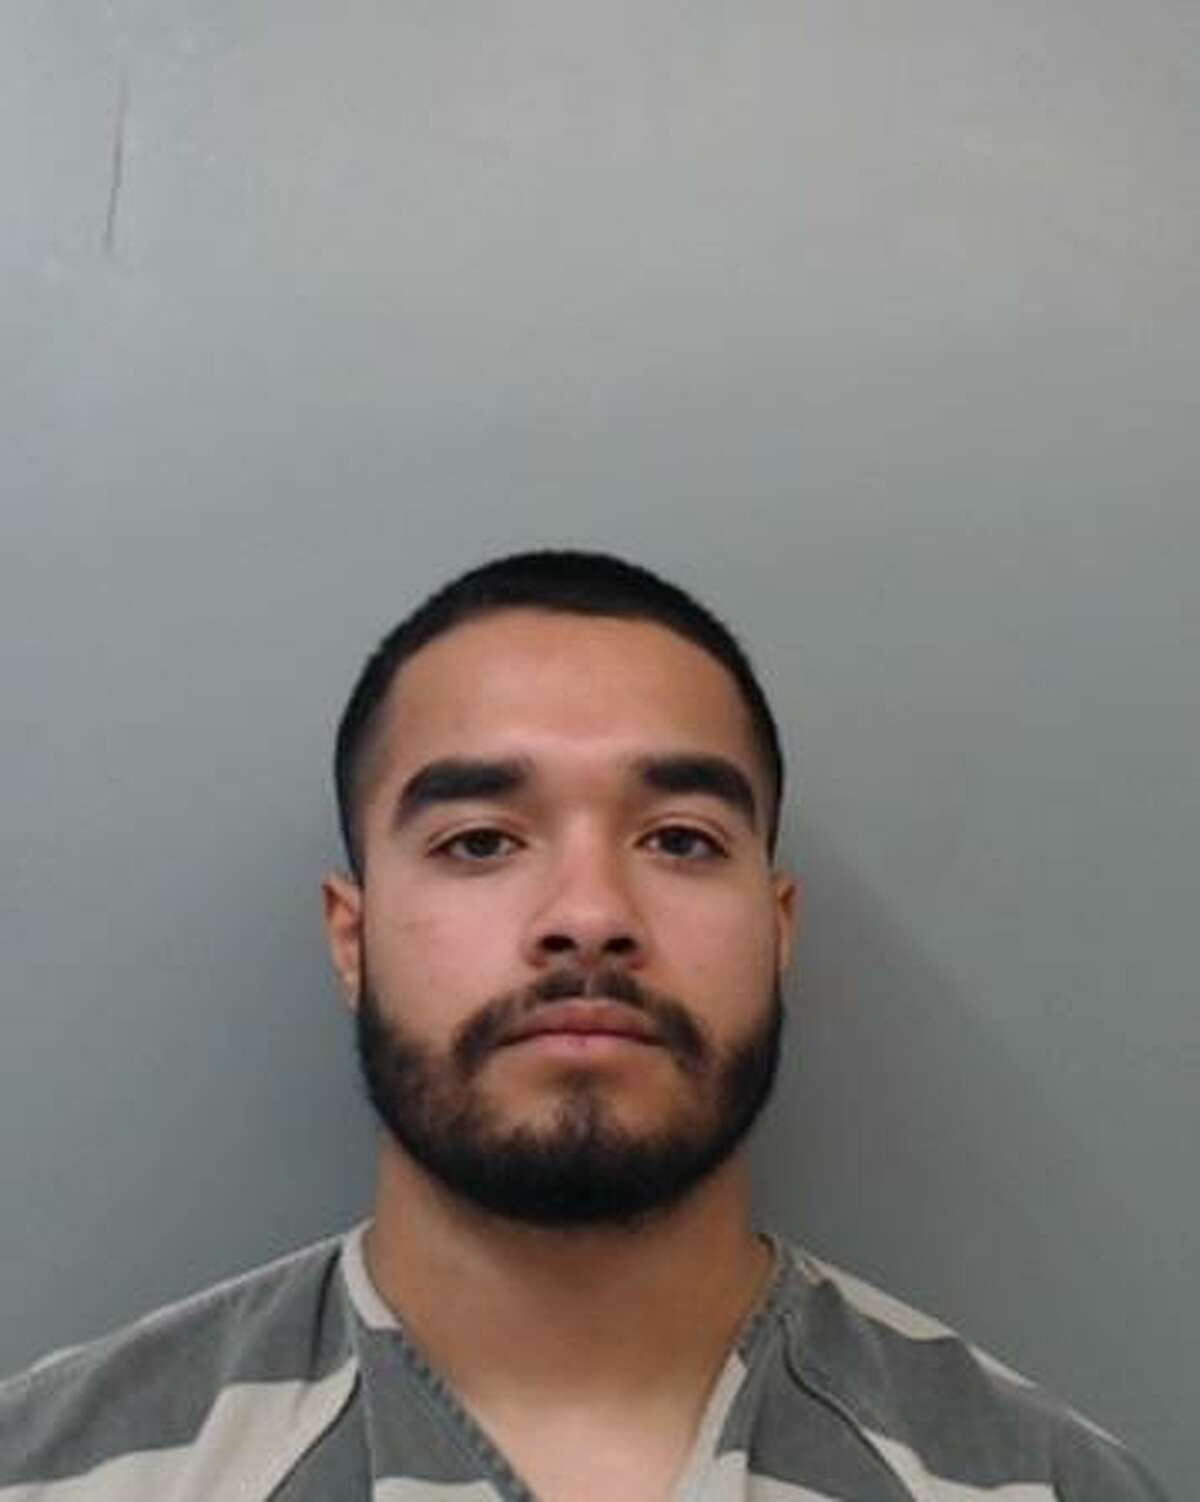 Joshua Tyler Montoya, 18, was served with an arrest warrant charging him with aggravated robbery.